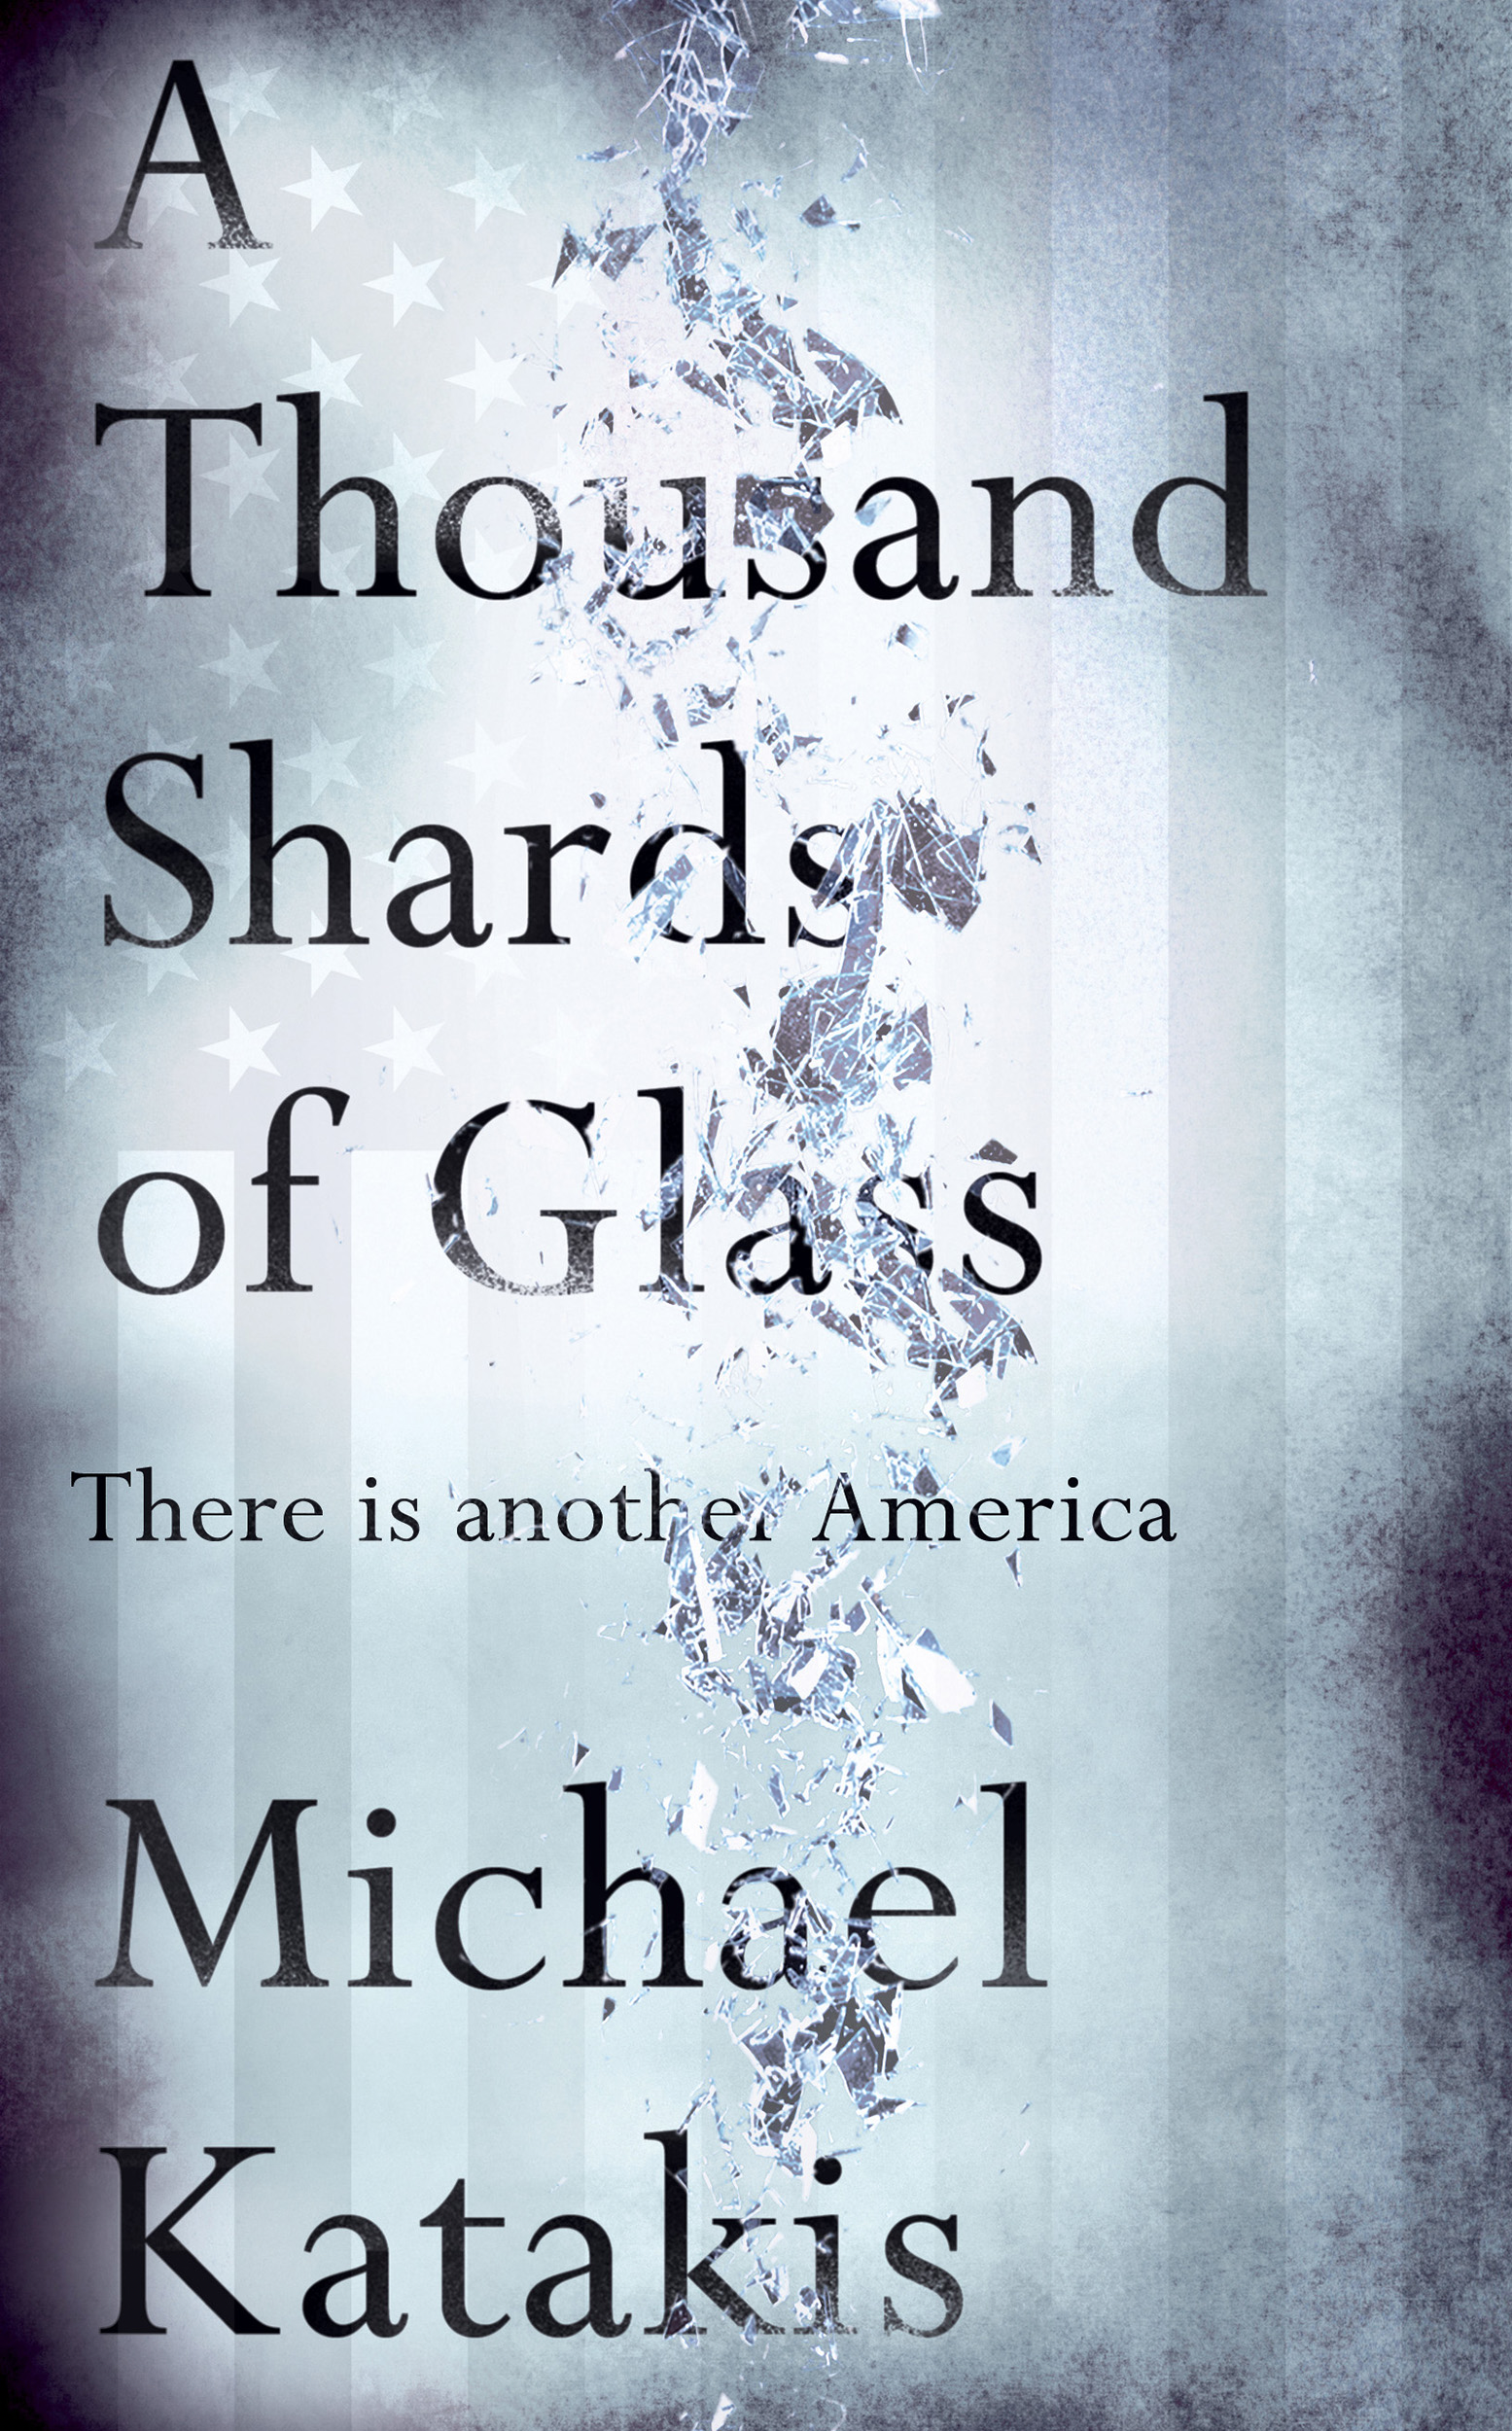 Click here for more details or to buy Thousand Shards of Glass